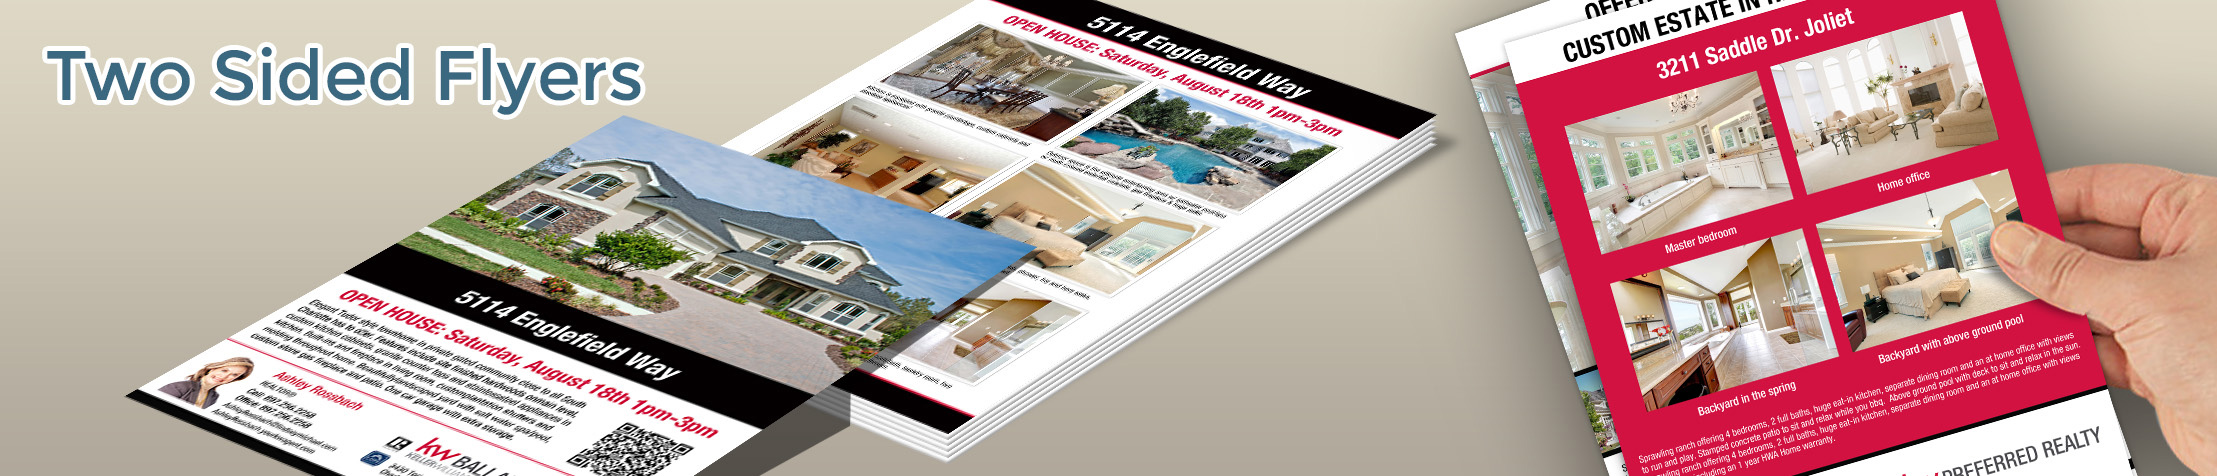 Keller Williams Real Estate Flyers and Brochures - KW approved vendor two-sided flyer templates for open houses and marketing | BestPrintBuy.com